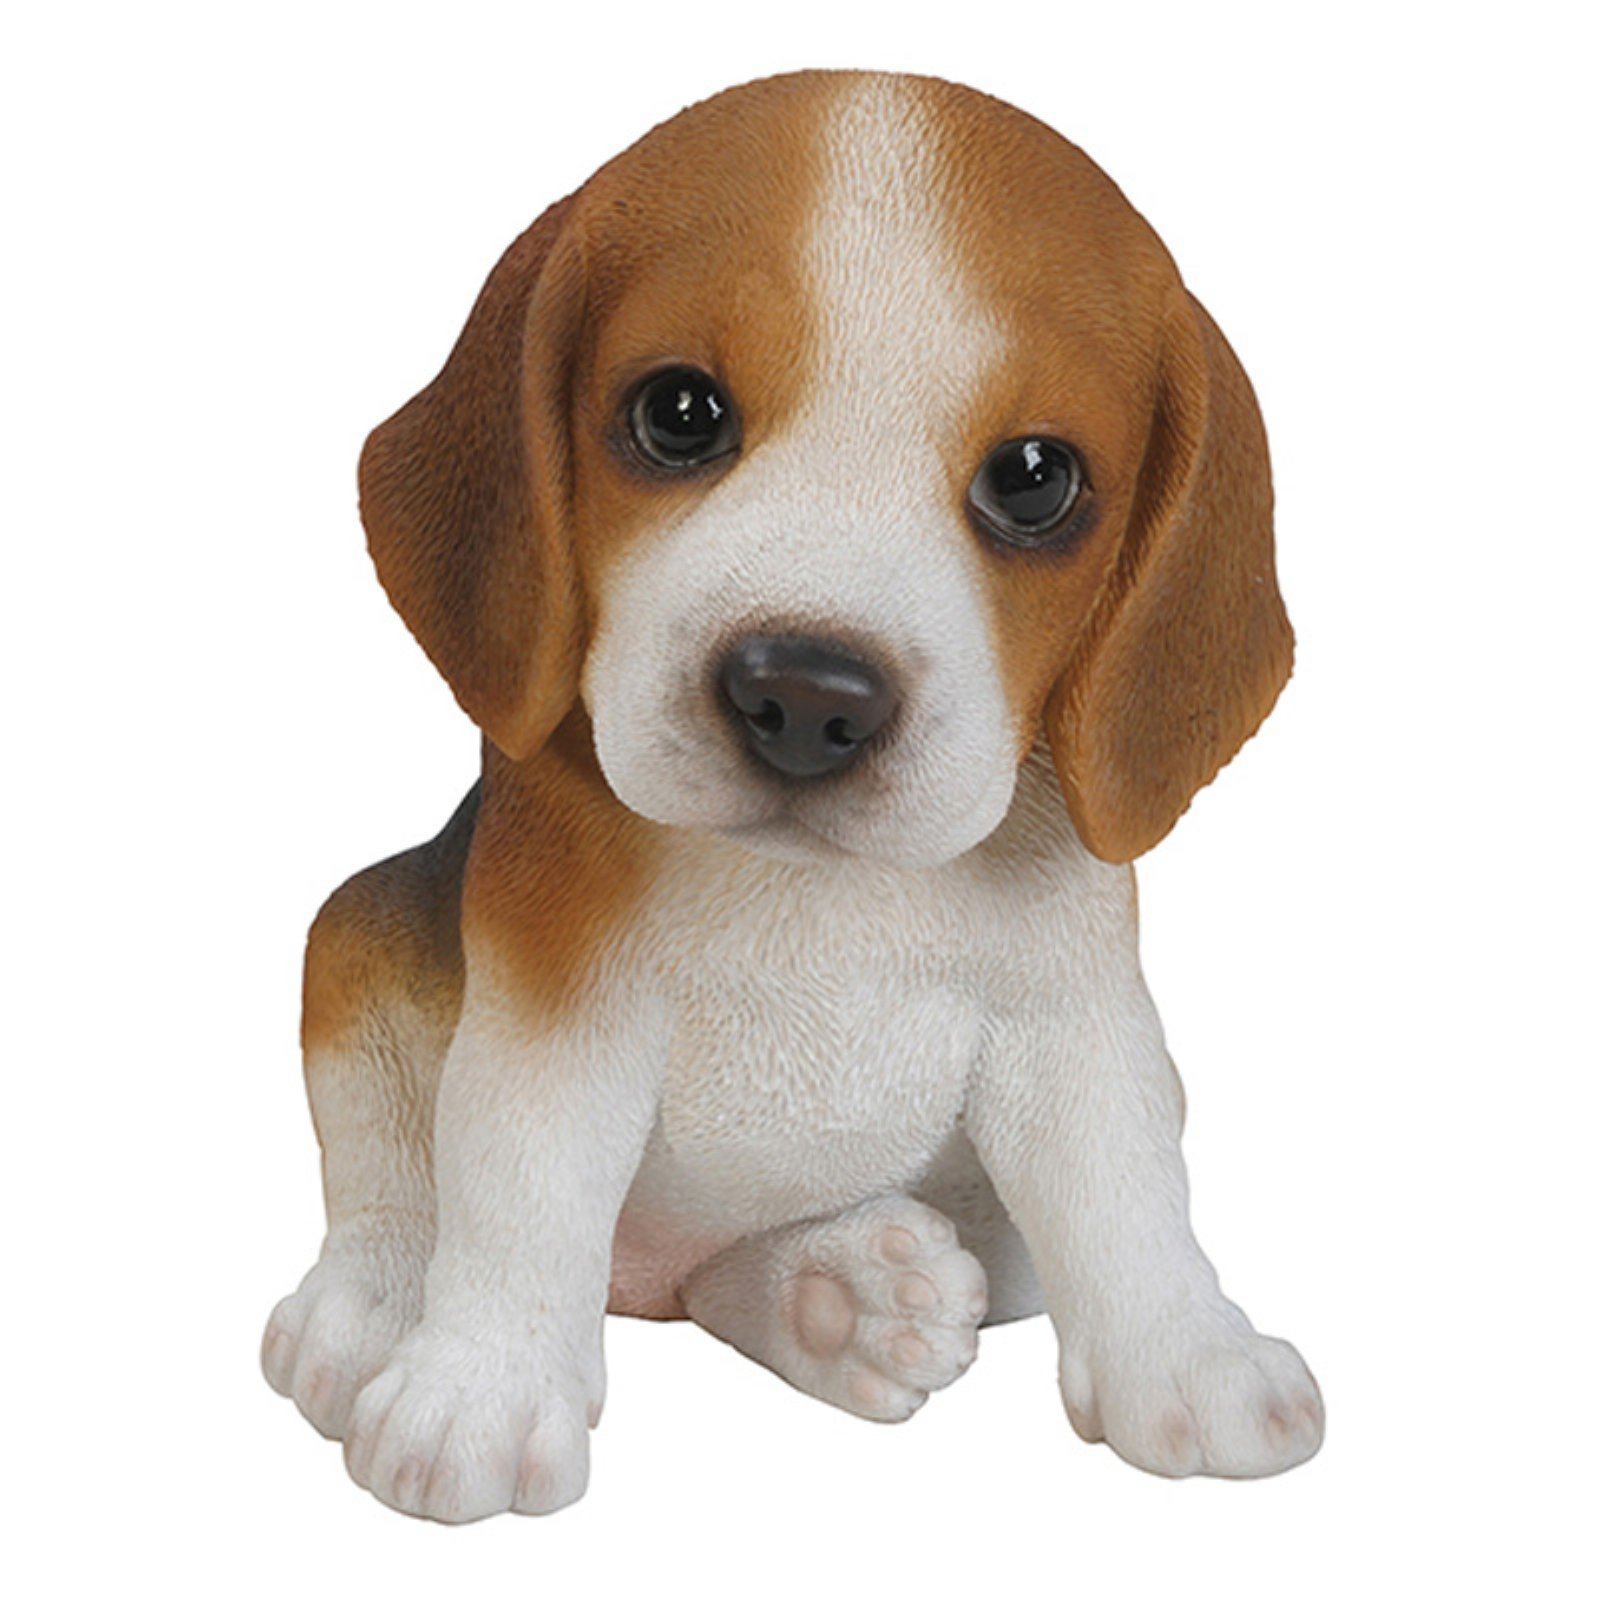 Natures Gallery Beagle Puppy Statue